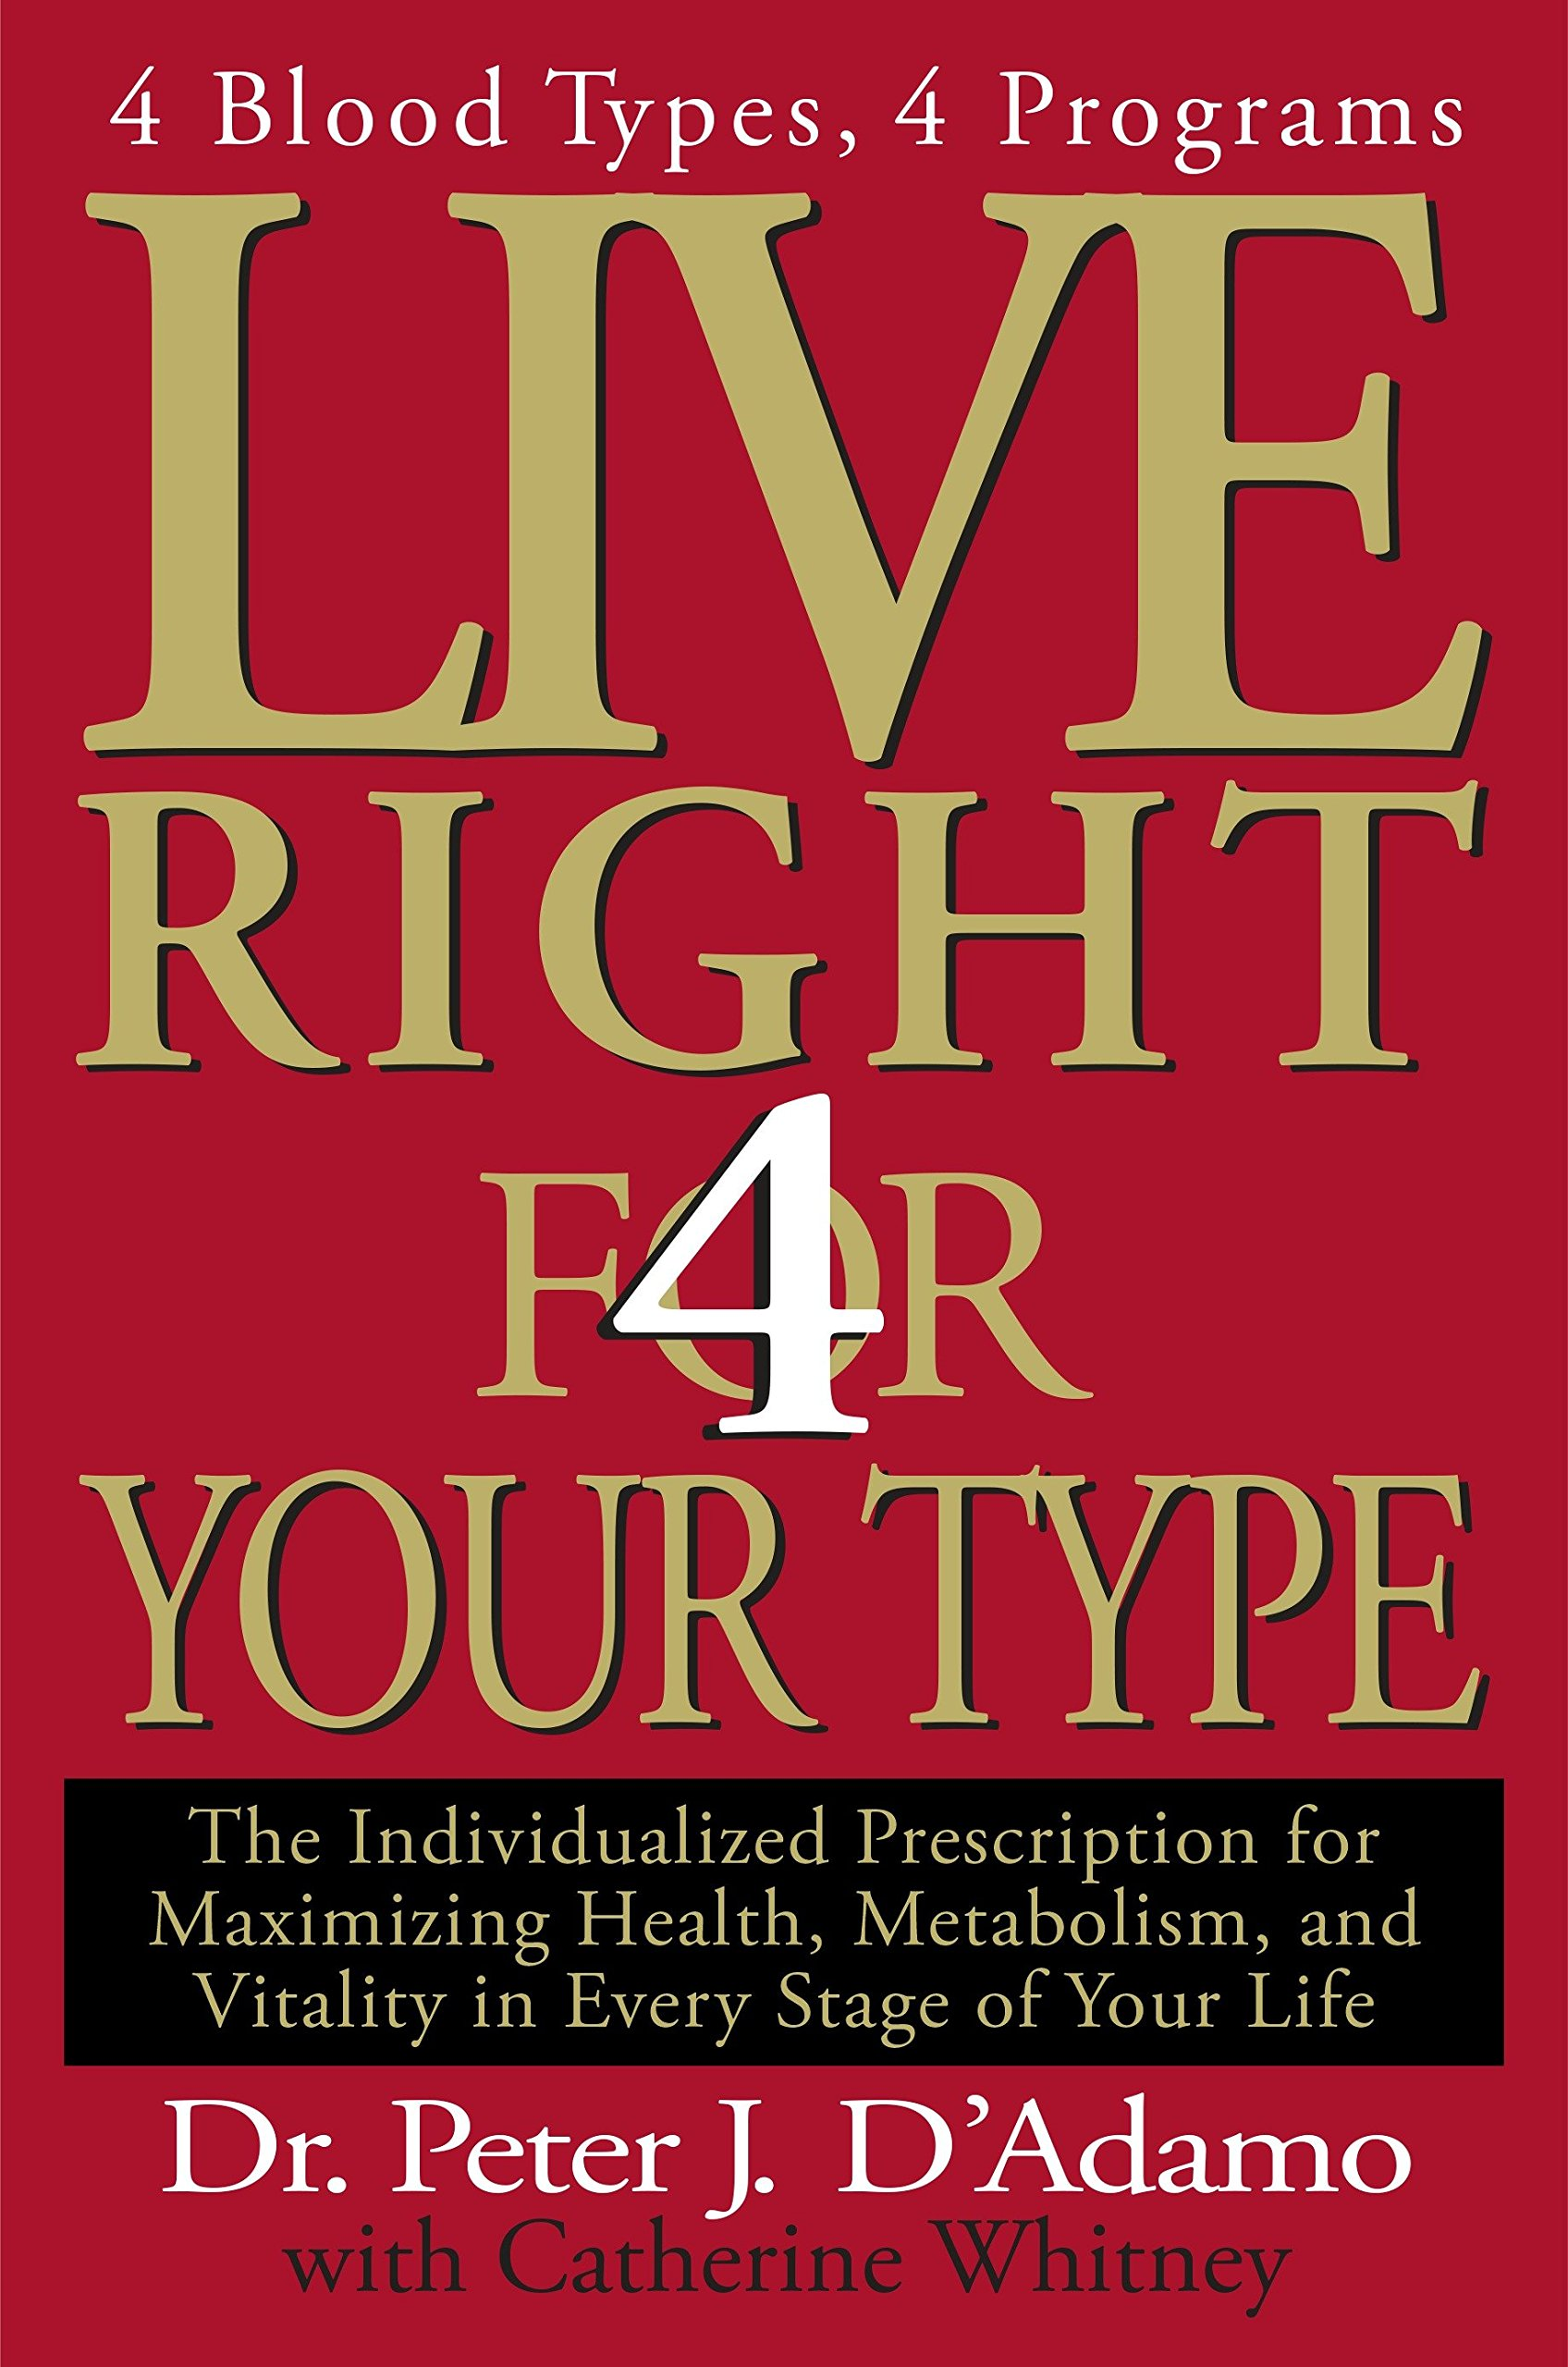 Download Live Right 4 Your Type: 4 Blood Types, 4 Program -- The Individualized Prescription For Maximizing Health, Metabolism, And... 